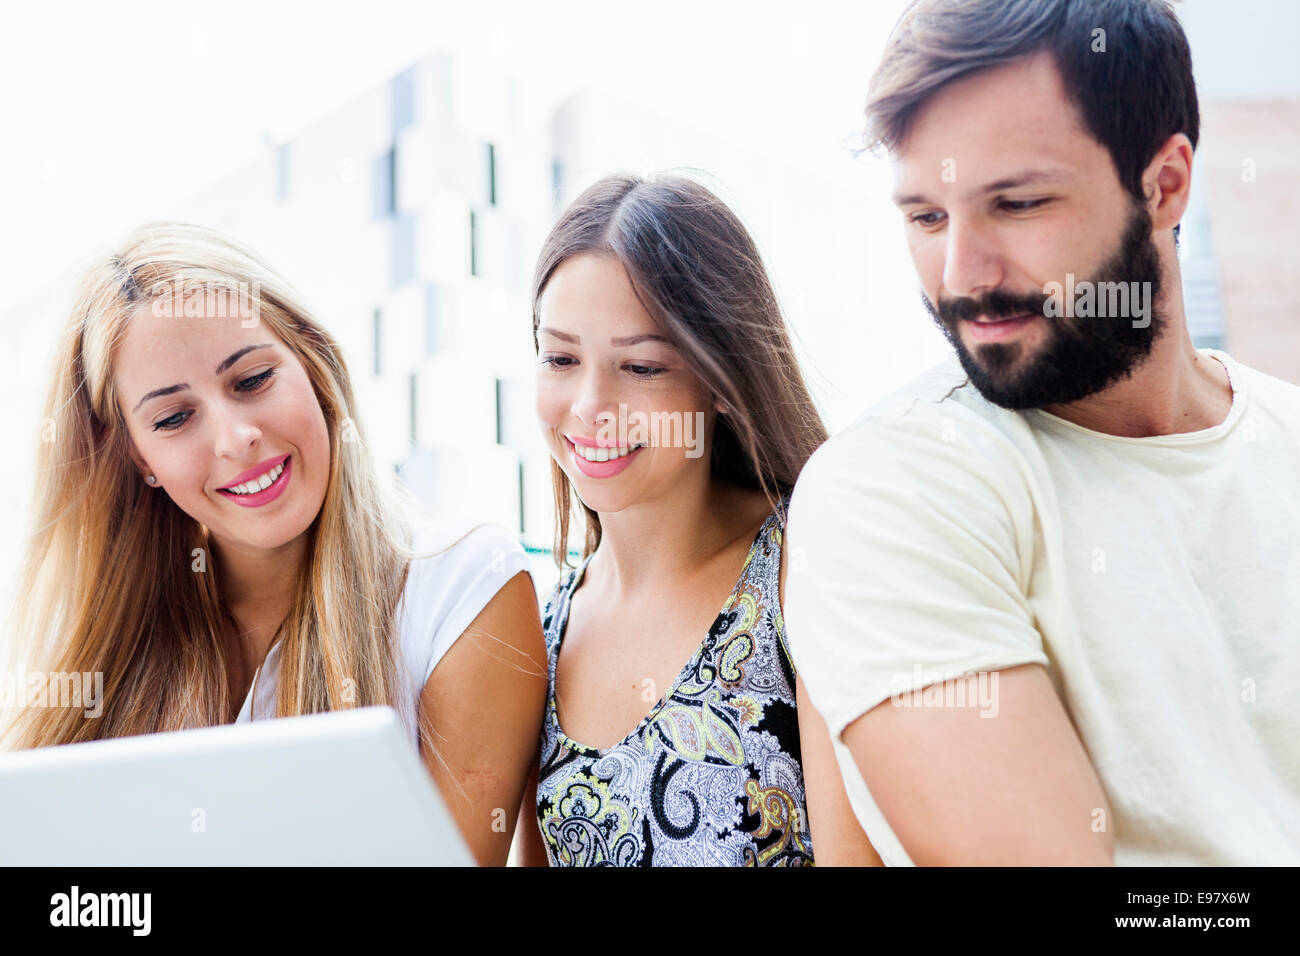 Three students using laptop together - Stock Image